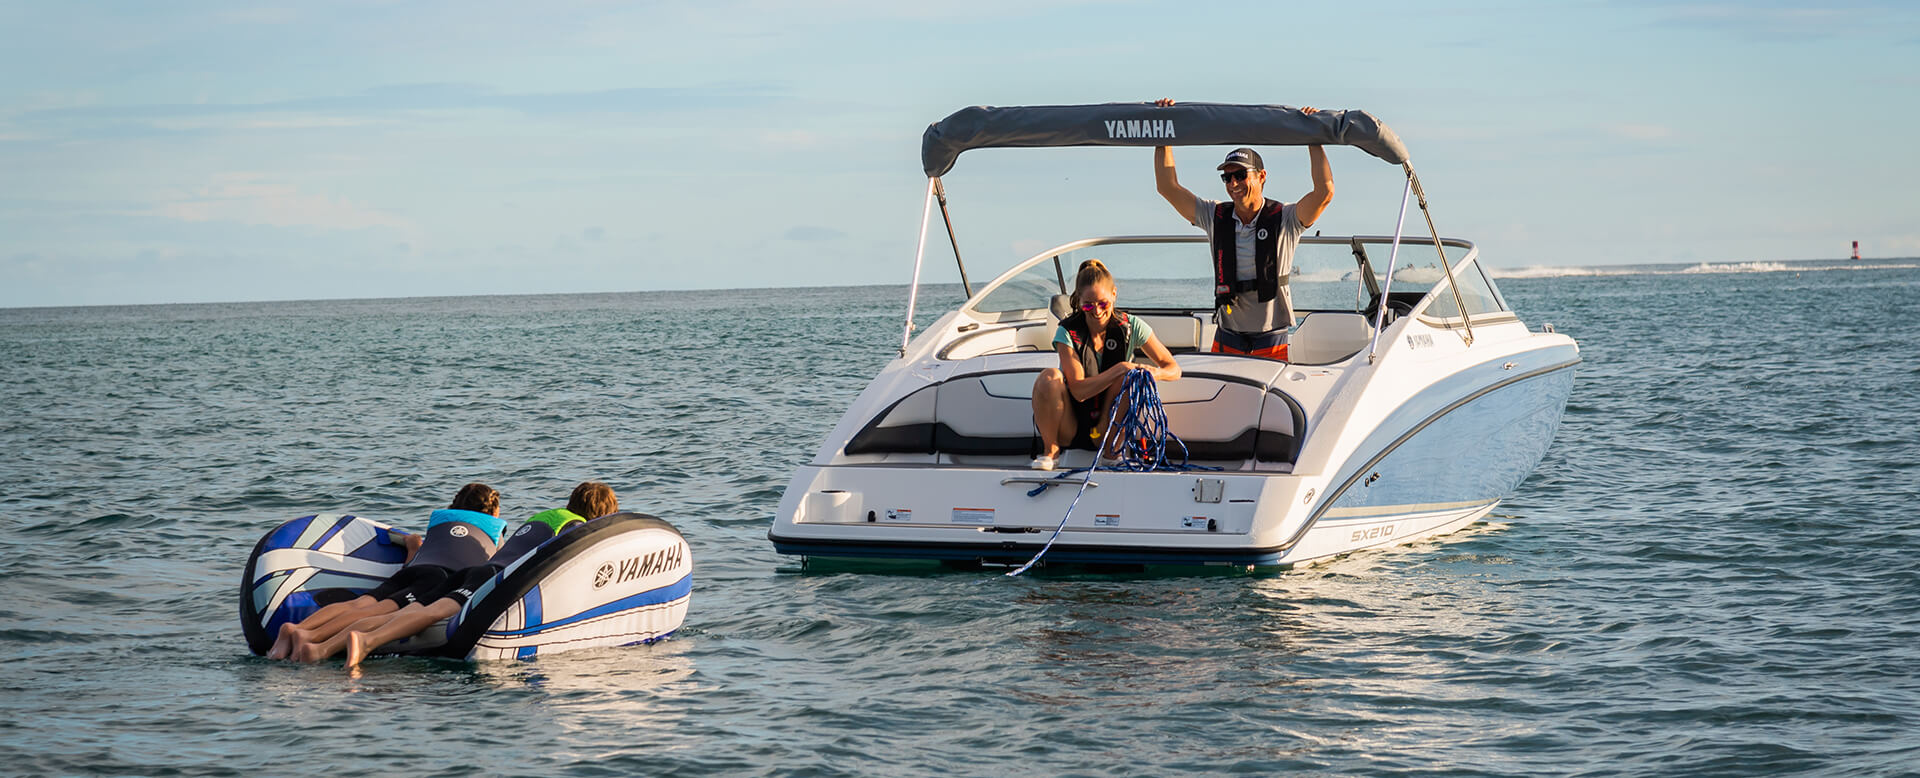 yamaha-boats-2019-sx-210-blue-ready-for-tubing-hero